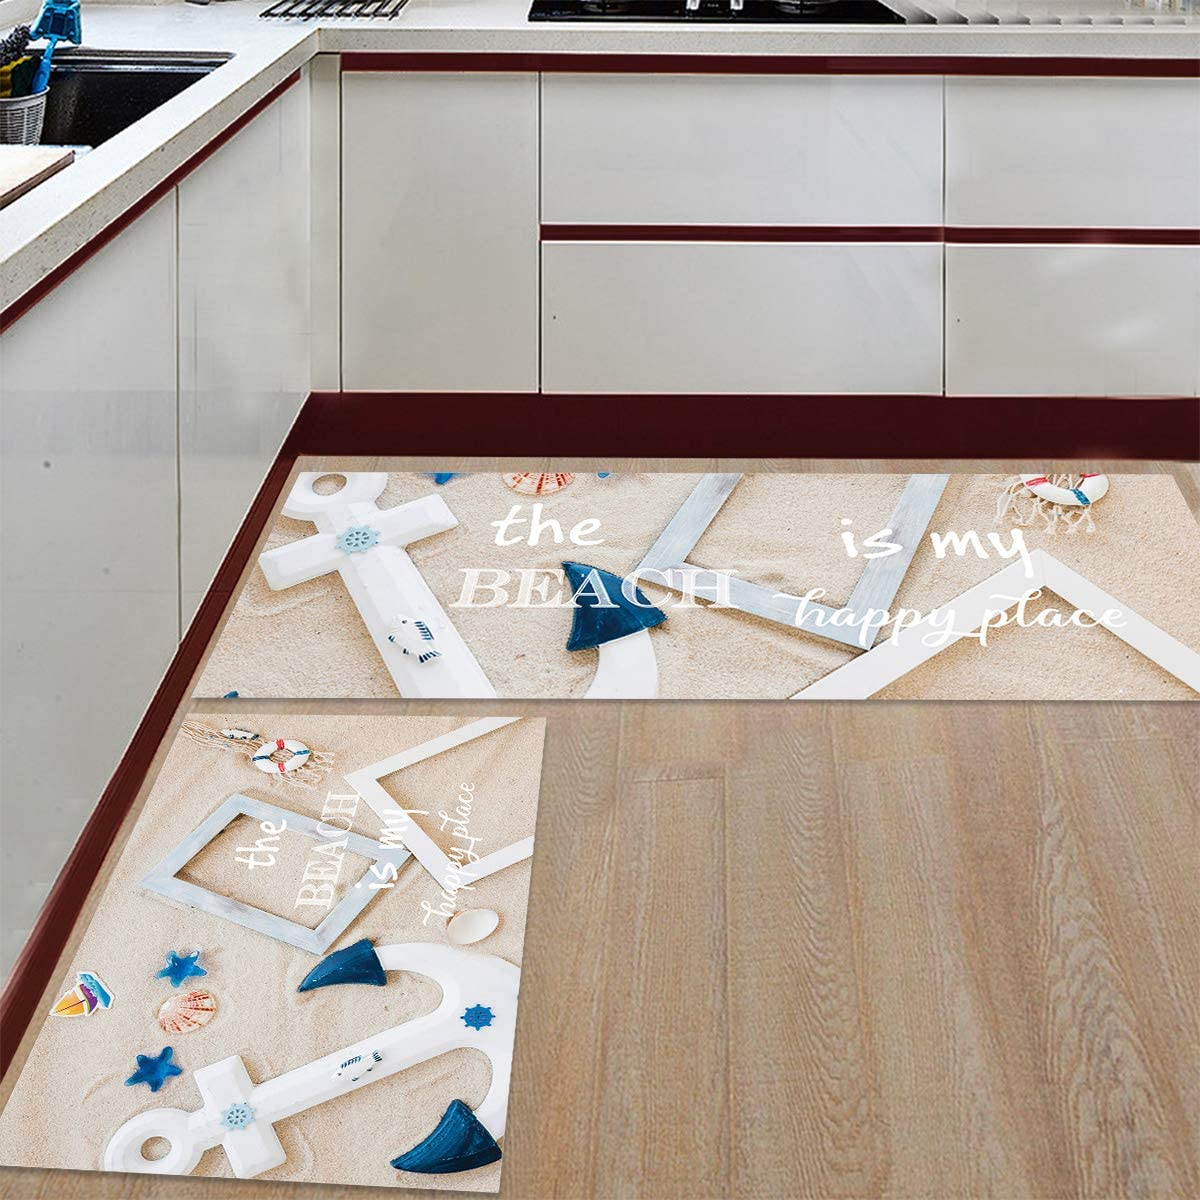 Prime Leader 25% OFF Kitchen Mat and Rugs Beac Starfish 2 Set shipfree Anchor of